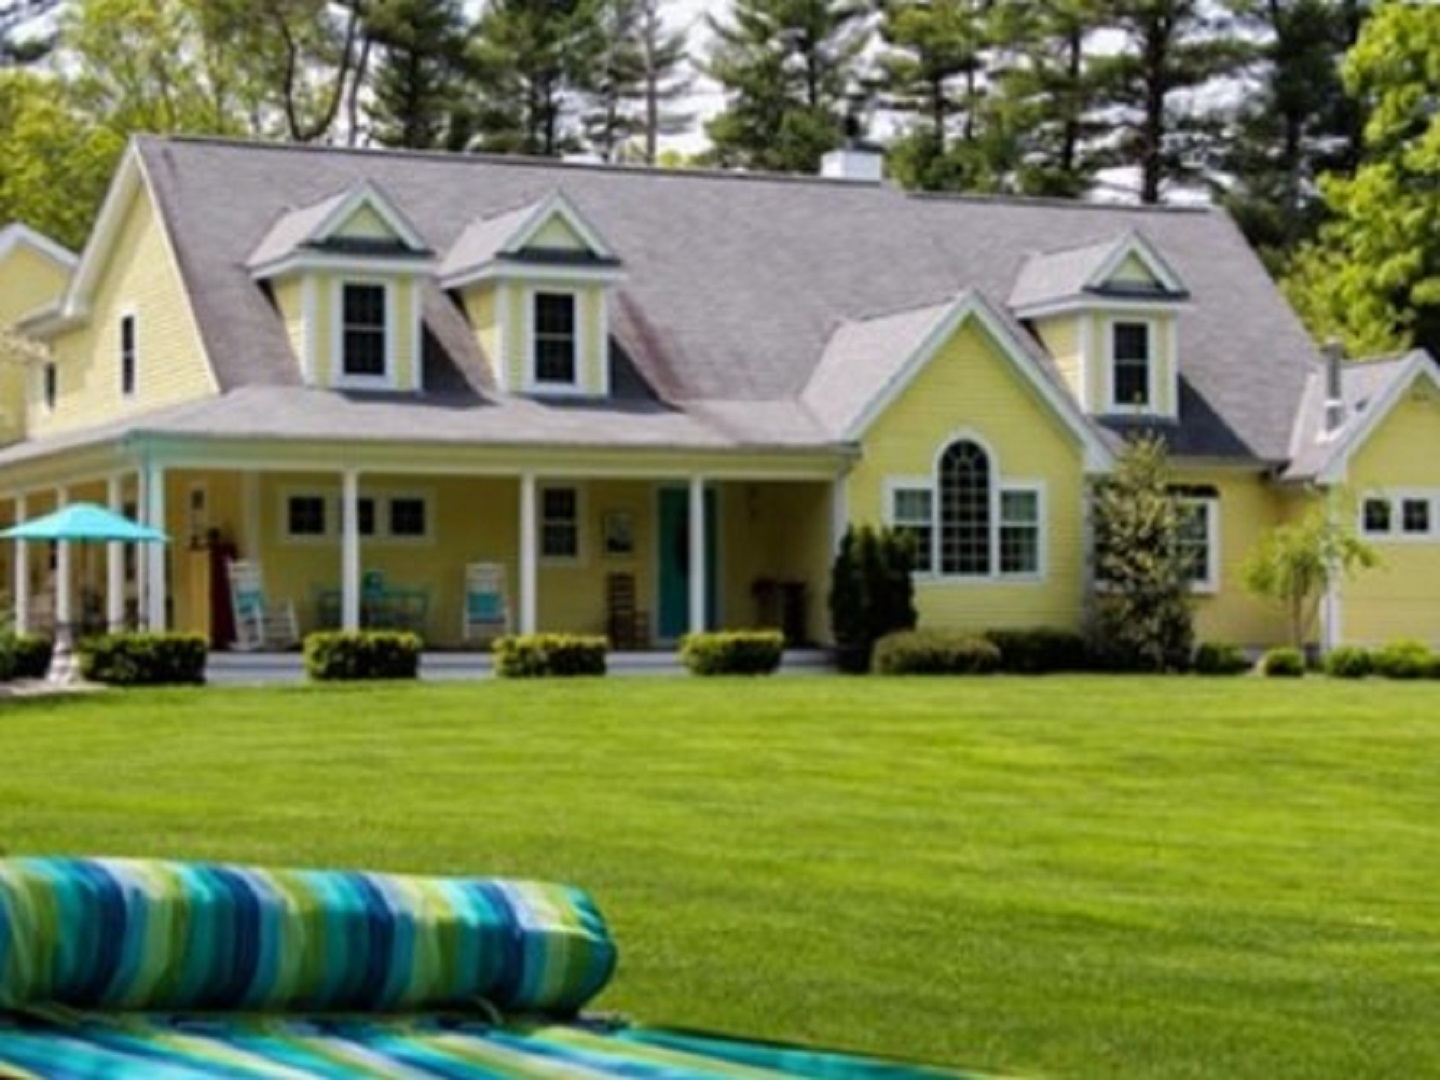 A house with a lawn in front of a building at Ahh...Qua Bed and Breakfast.